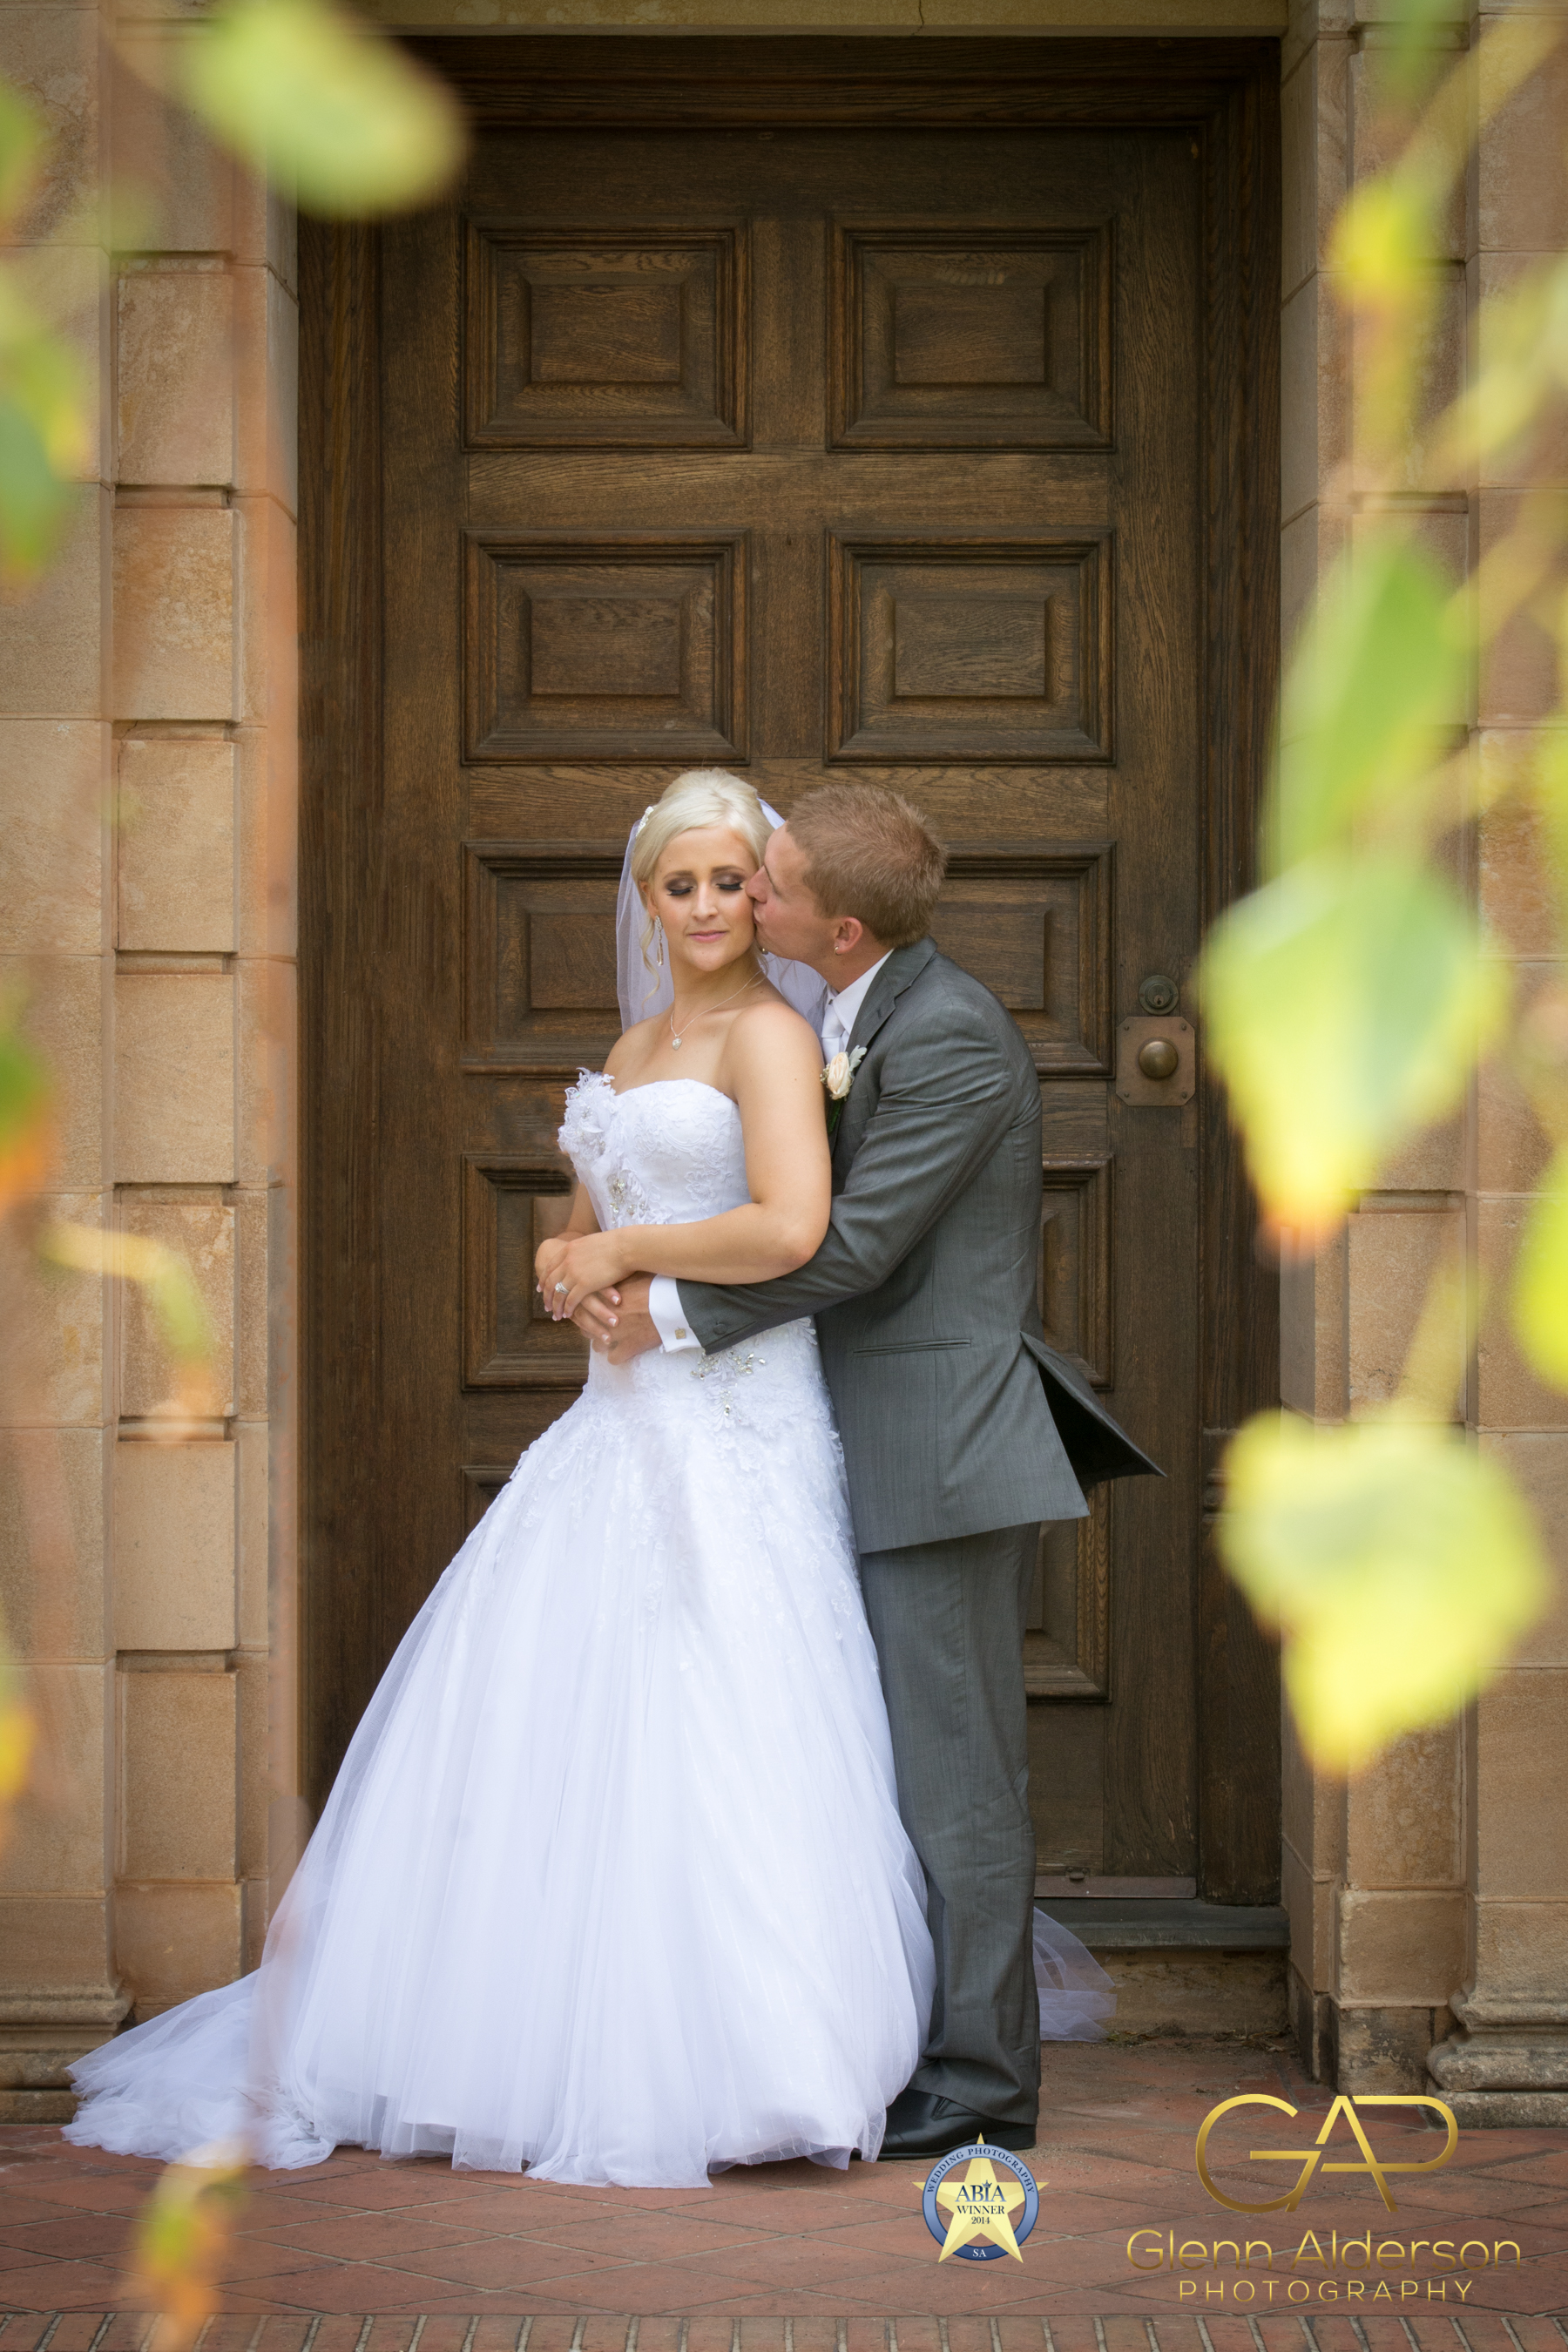 Carrick Hill Wedding - James & Kimberly